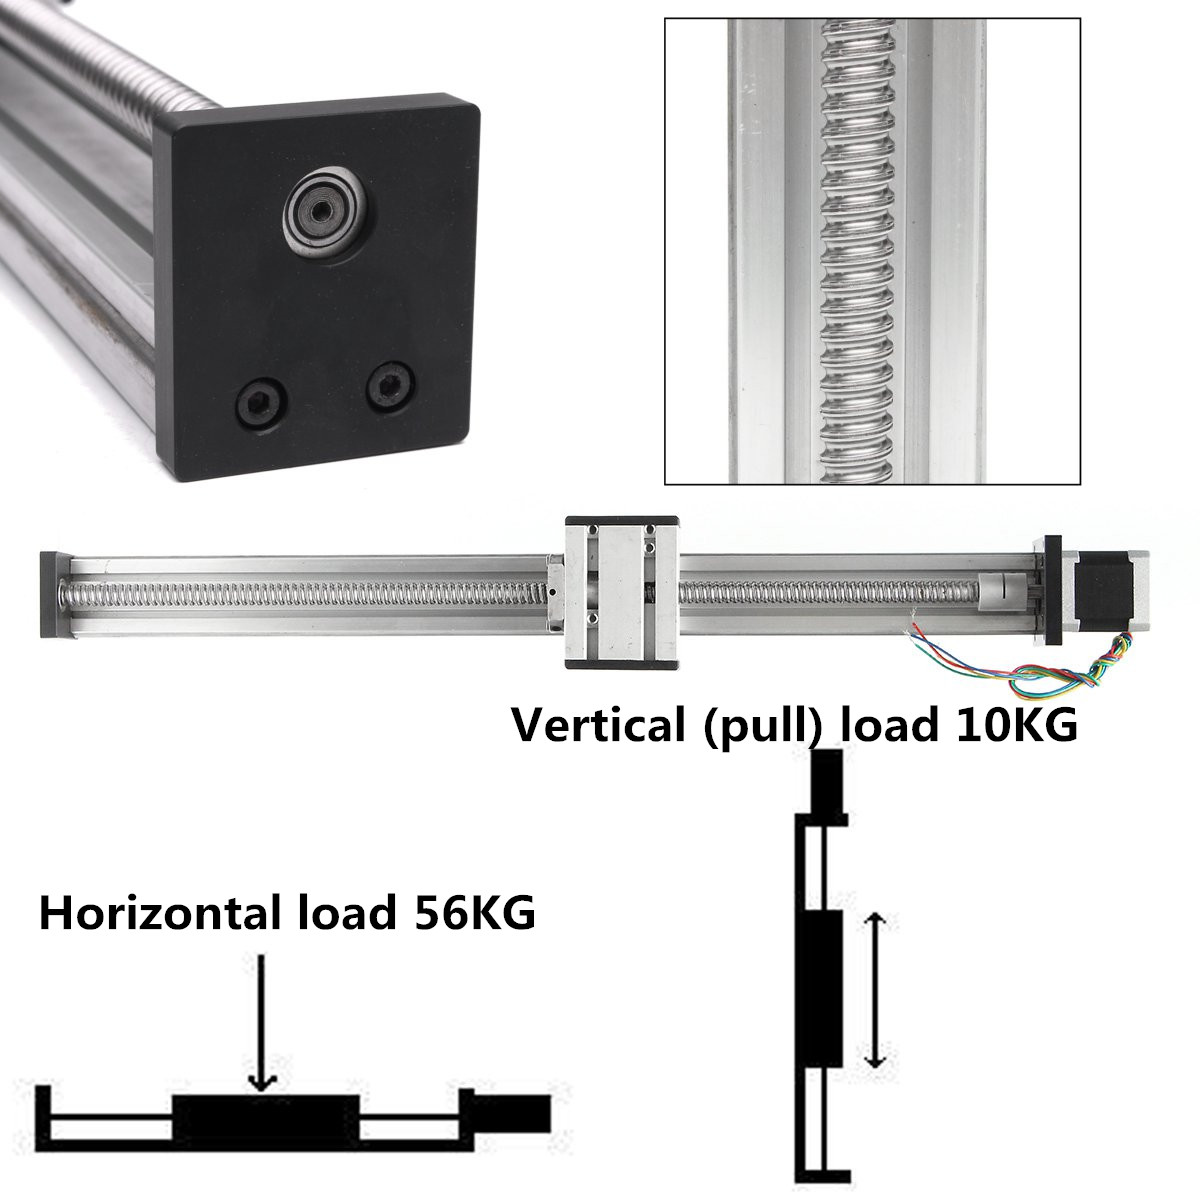 400MM1204 Ball Screw Linear CNC Z Axis Slide Stroke  Actuator Stepper Motor Kit  DIY Linear Motion Milling Kit|Woodworking Machinery Parts| |  - title=